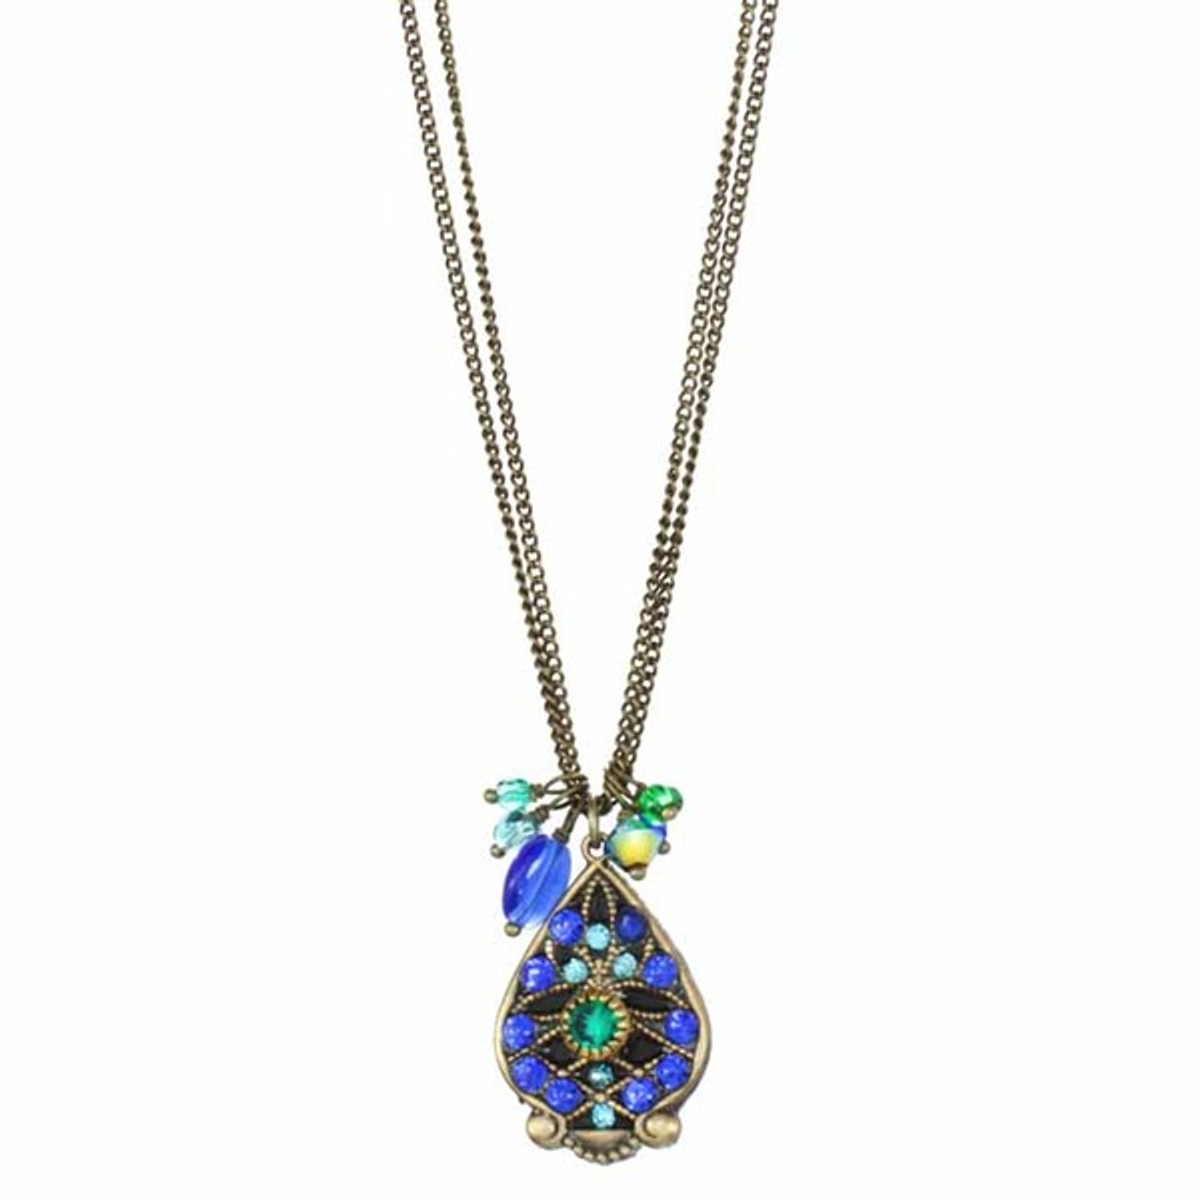 Peacock Necklace By Michal Golan Jewellery